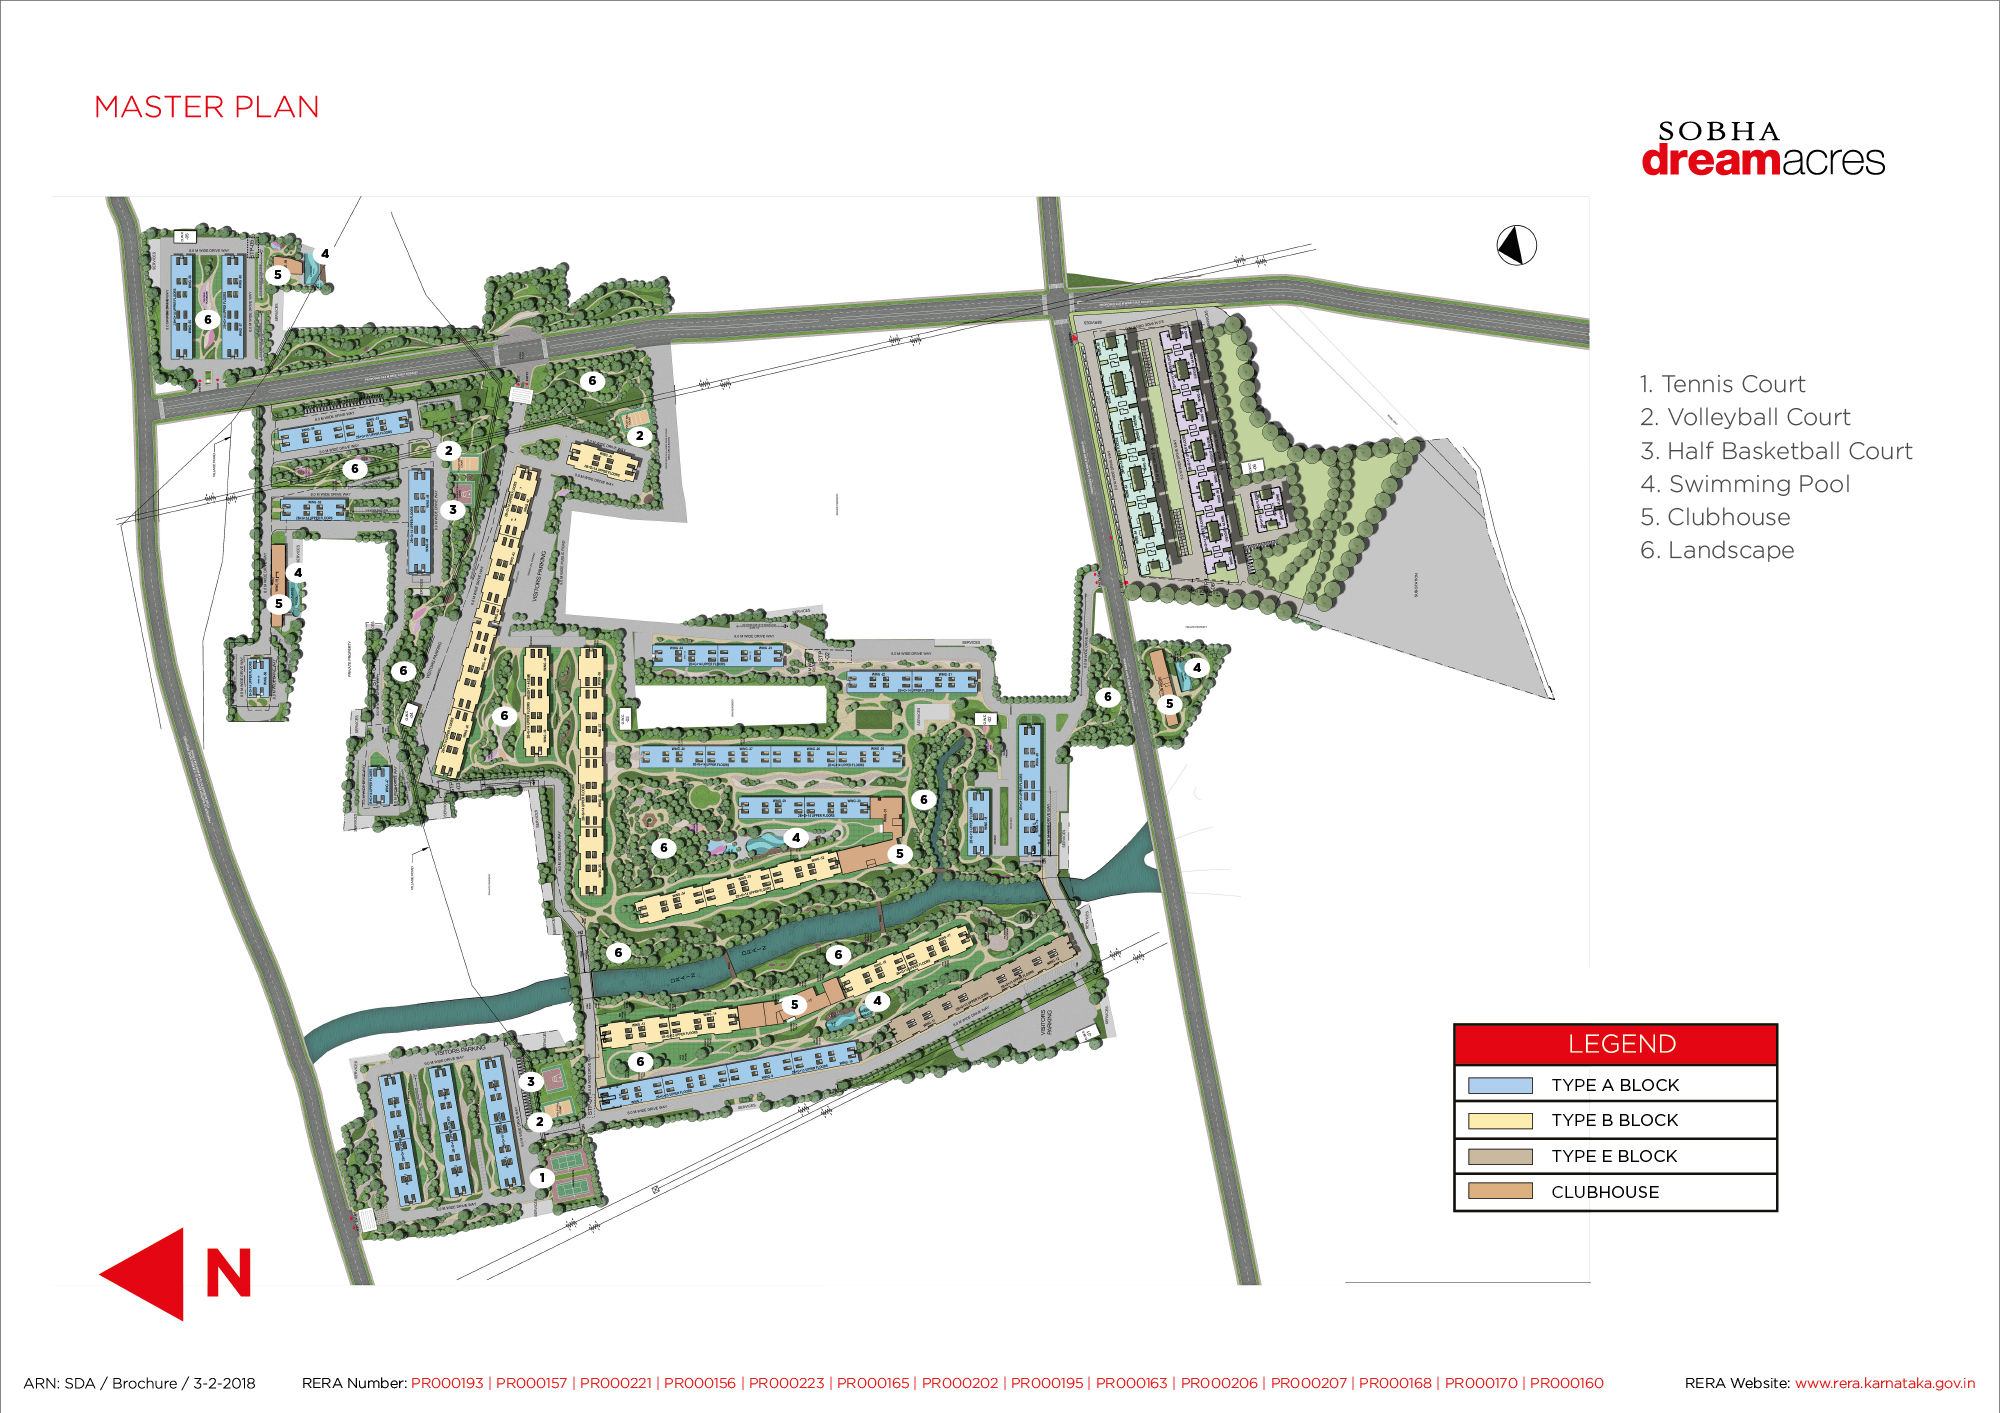 Master plan of Sobha Dream Acres - Flats for sale in Marathahalli